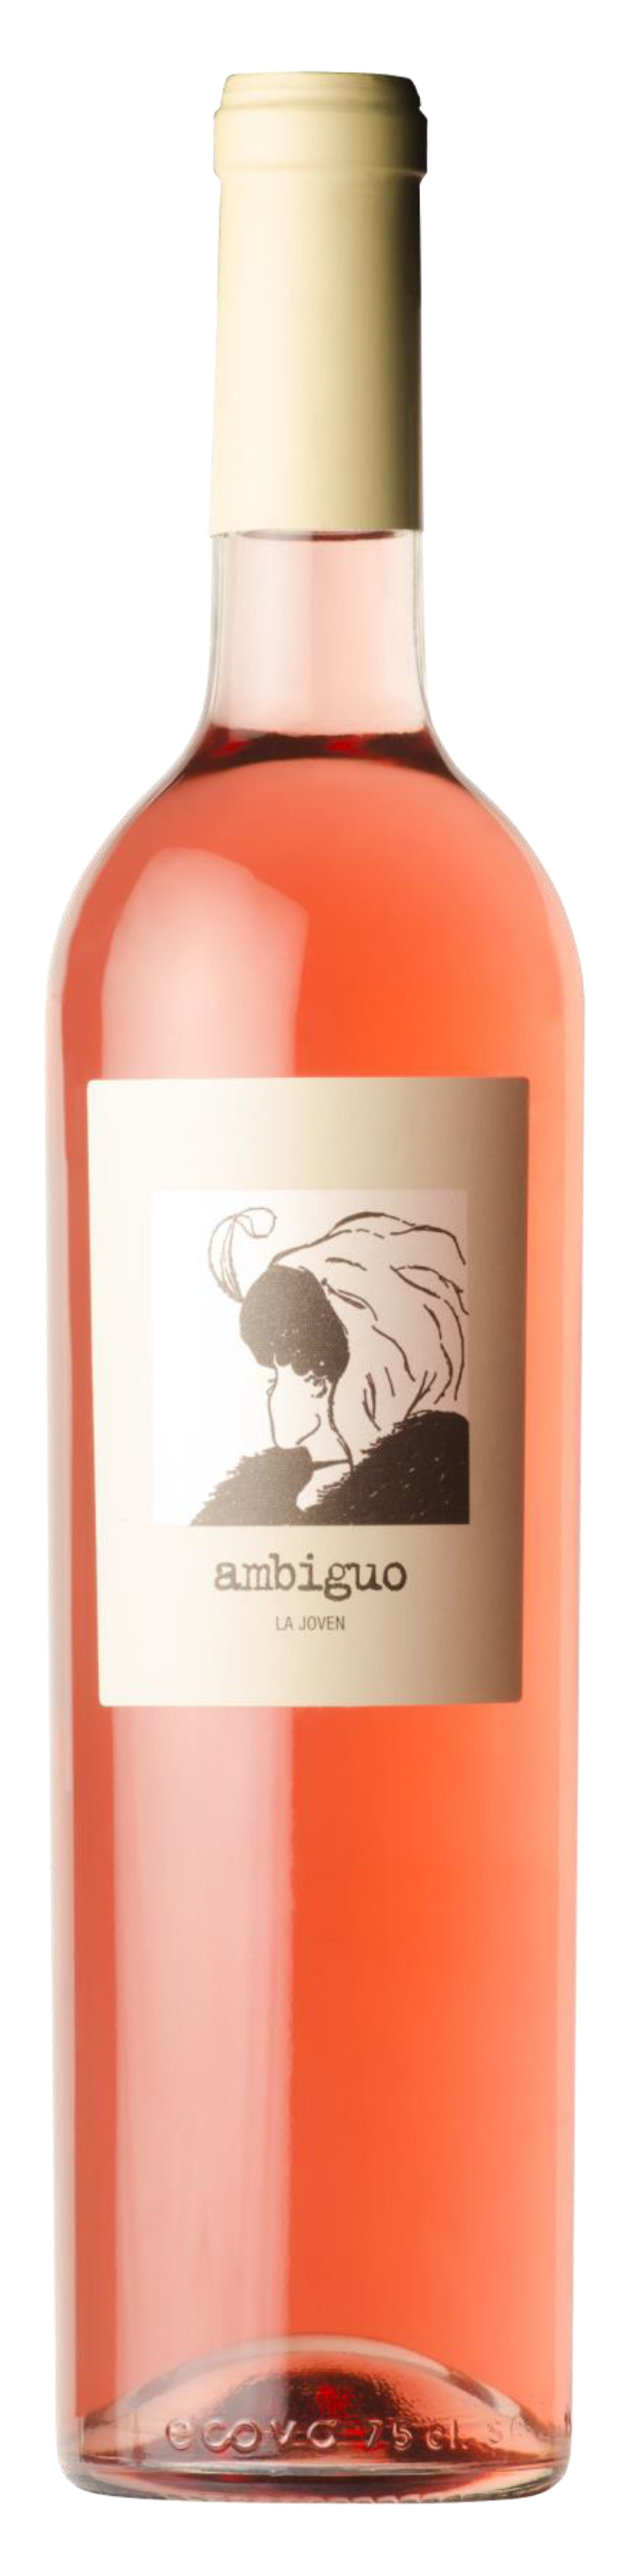 MAAL Ambiguo Bottle (Pink color).jpg